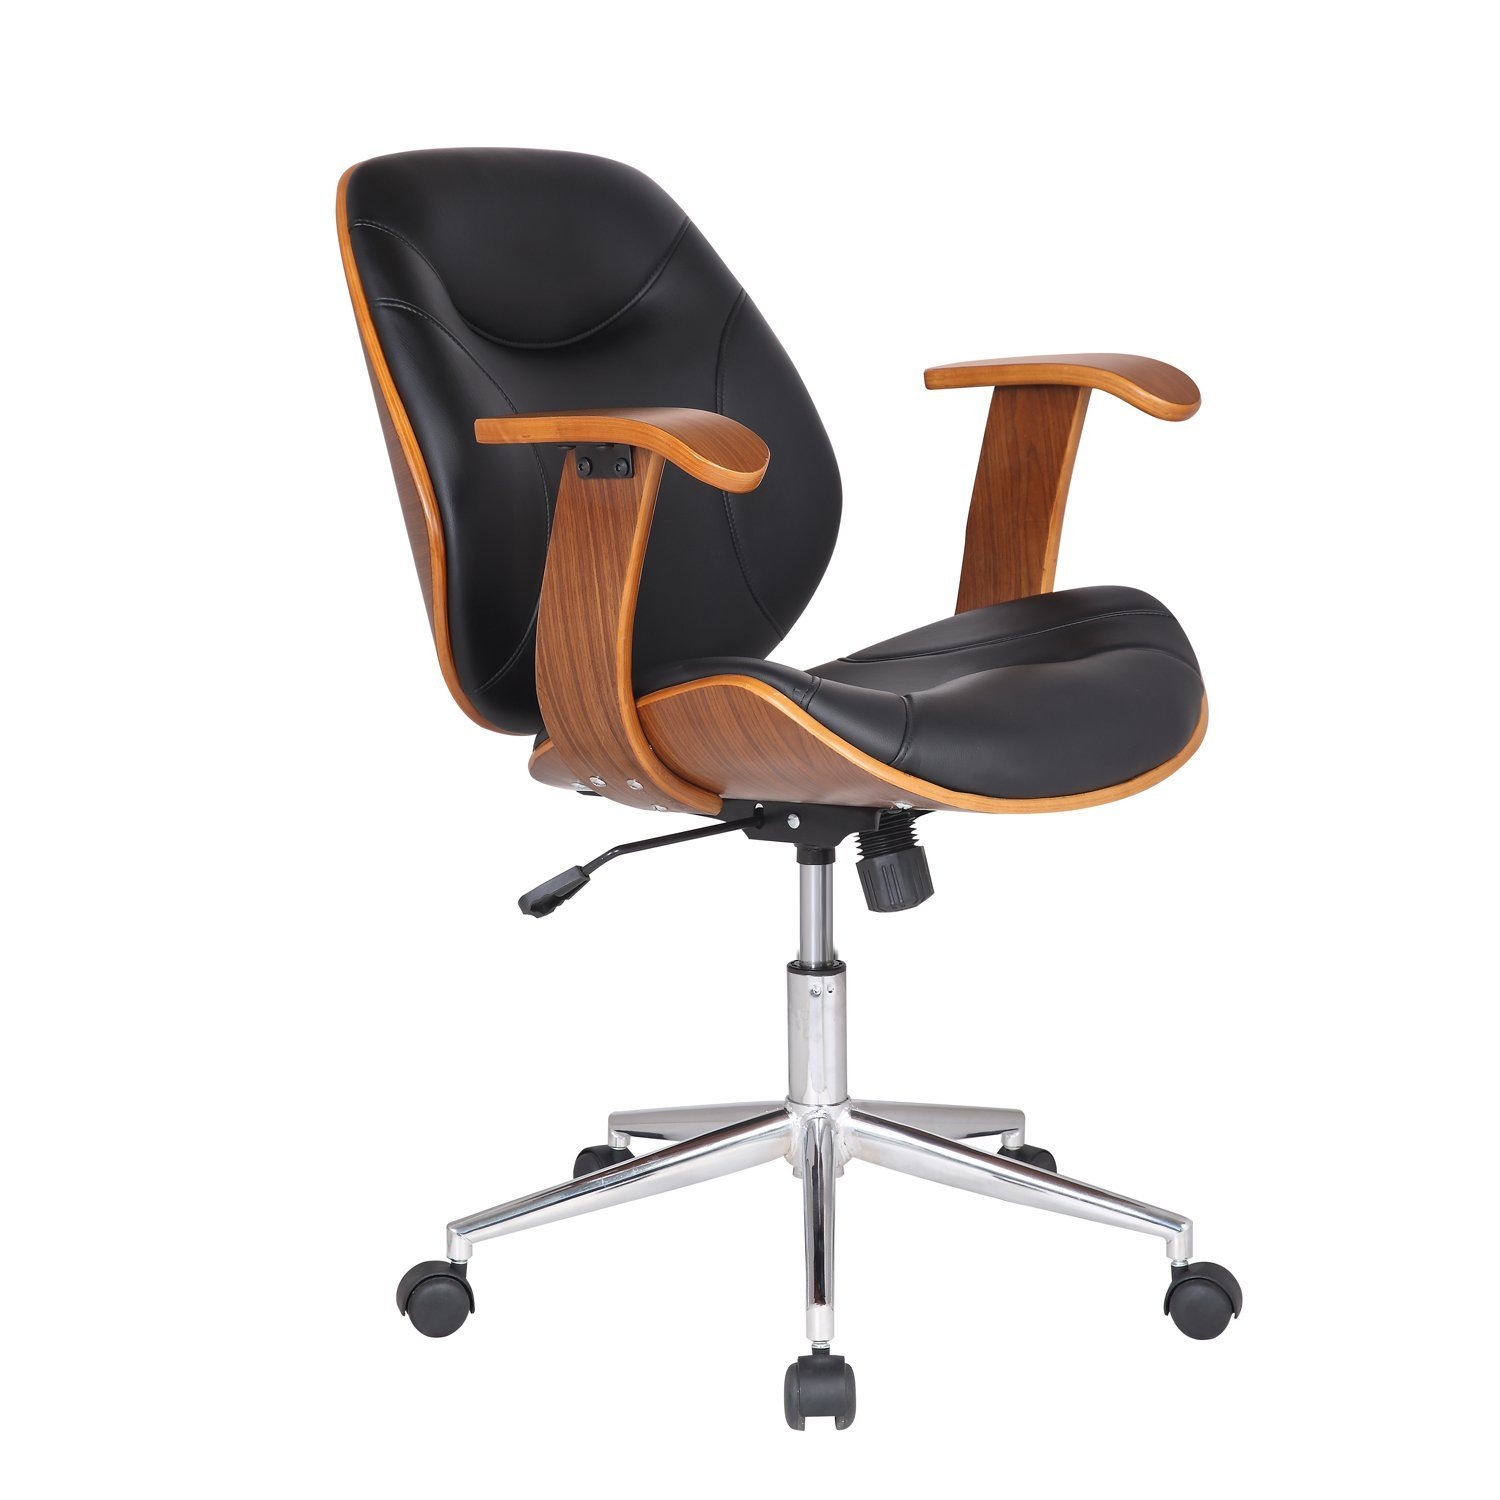 Adeco Bentwood Adjule Swivel Home Office Mobile Desk Chairs With Wood Arm Rest Caster Wheels